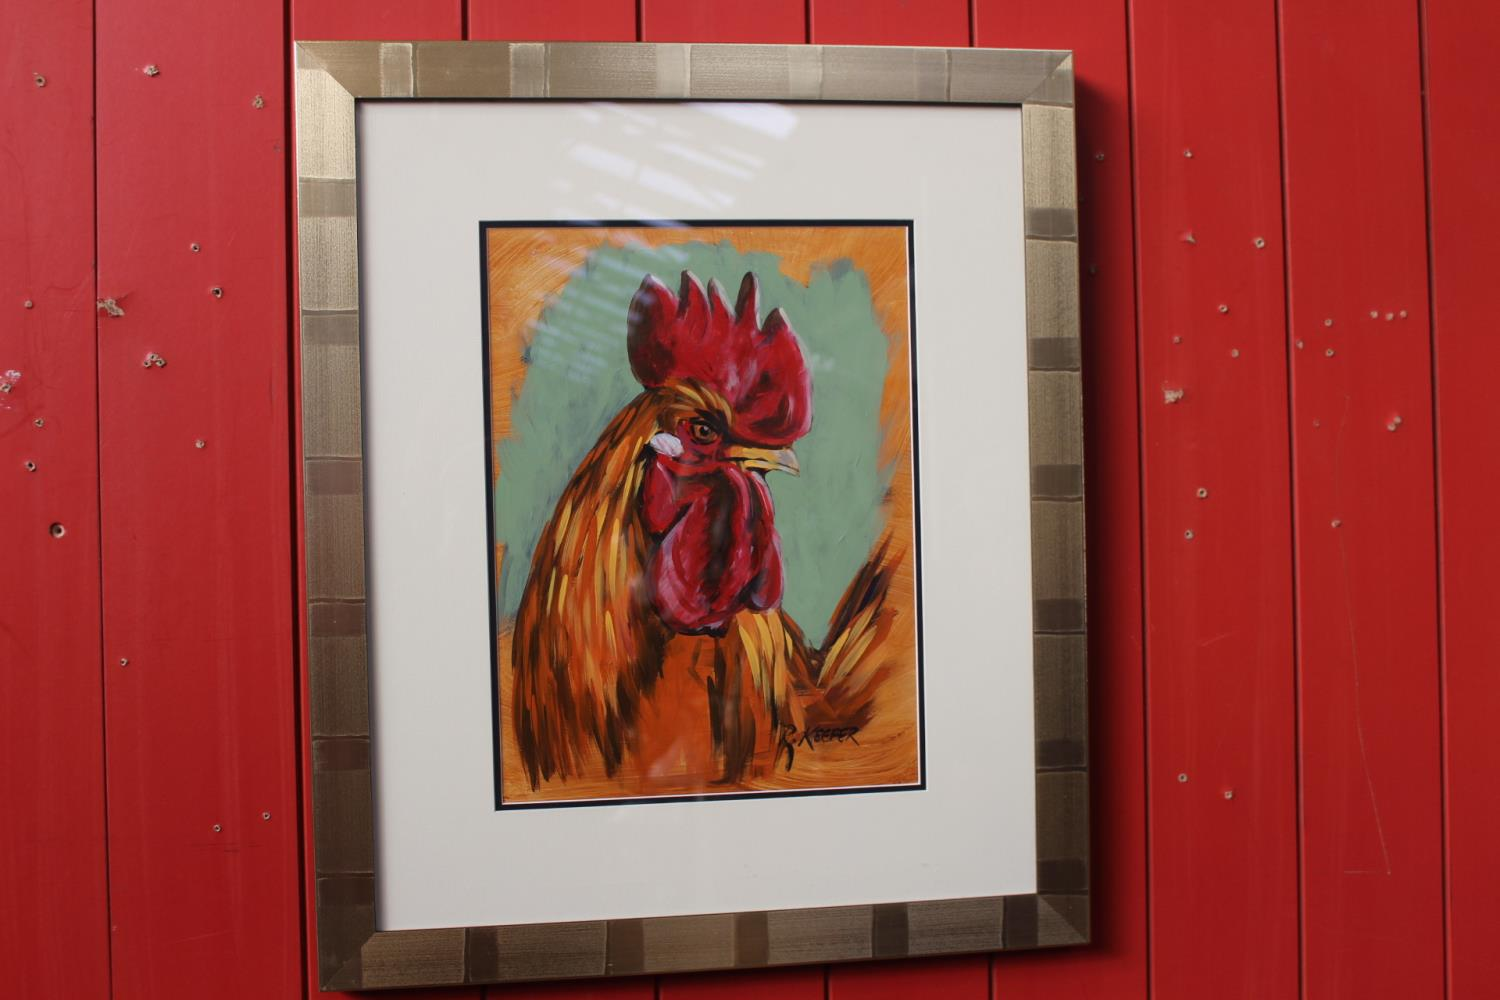 R Keefer - Rooster - Oil on Canvas